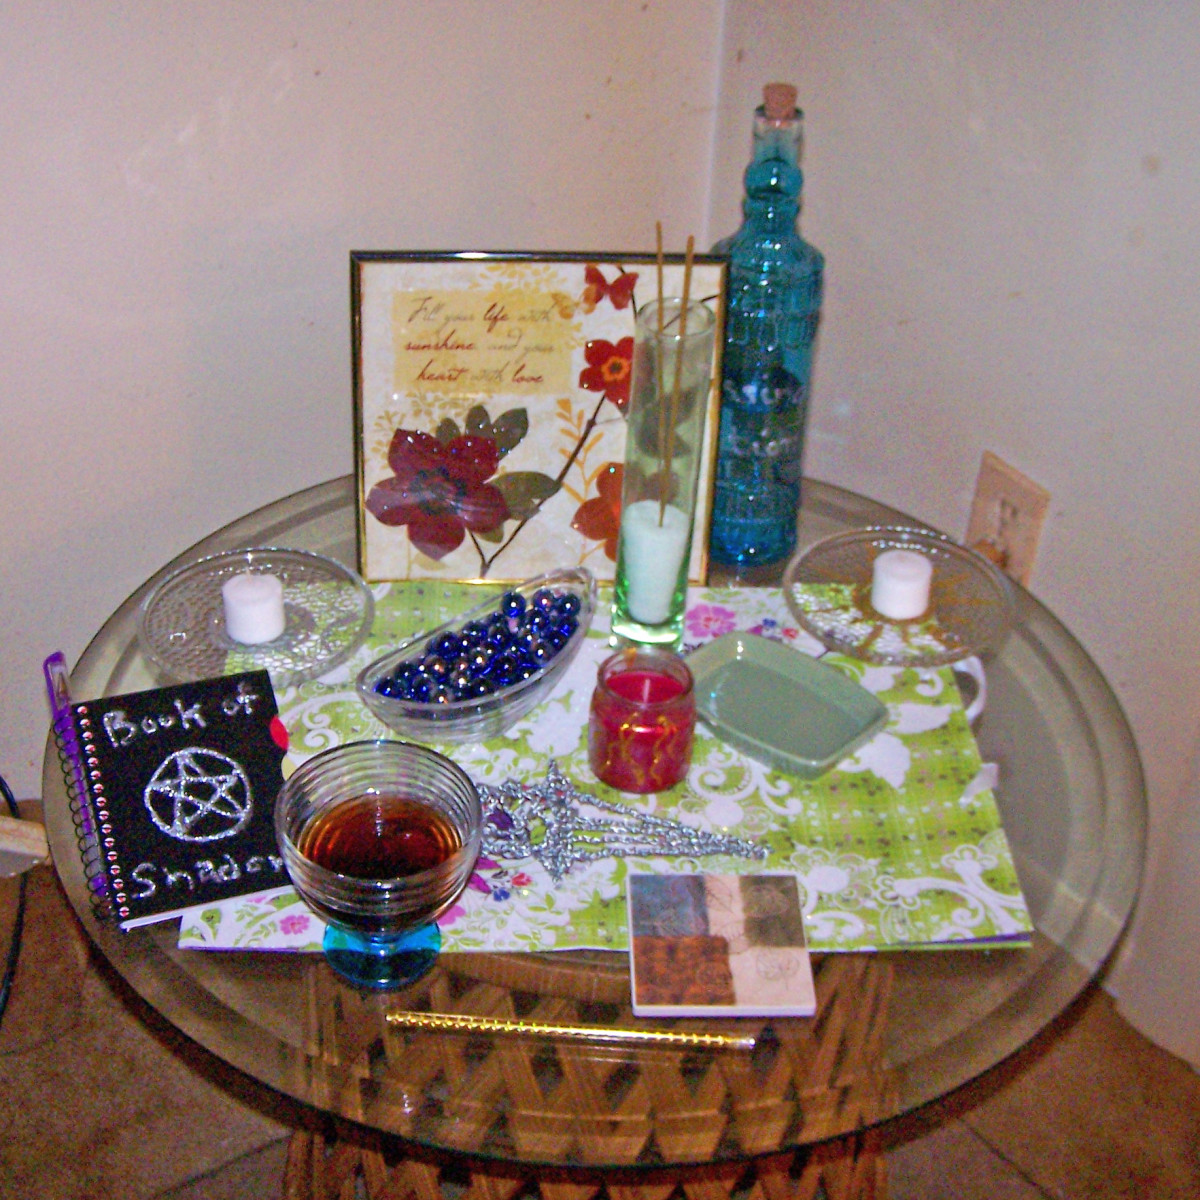 A perfectly serviceable altar for a budget of $20. This would be a fine starter altar for anyone-- and you can build on it, improve it, add to it, etc. for years to come.